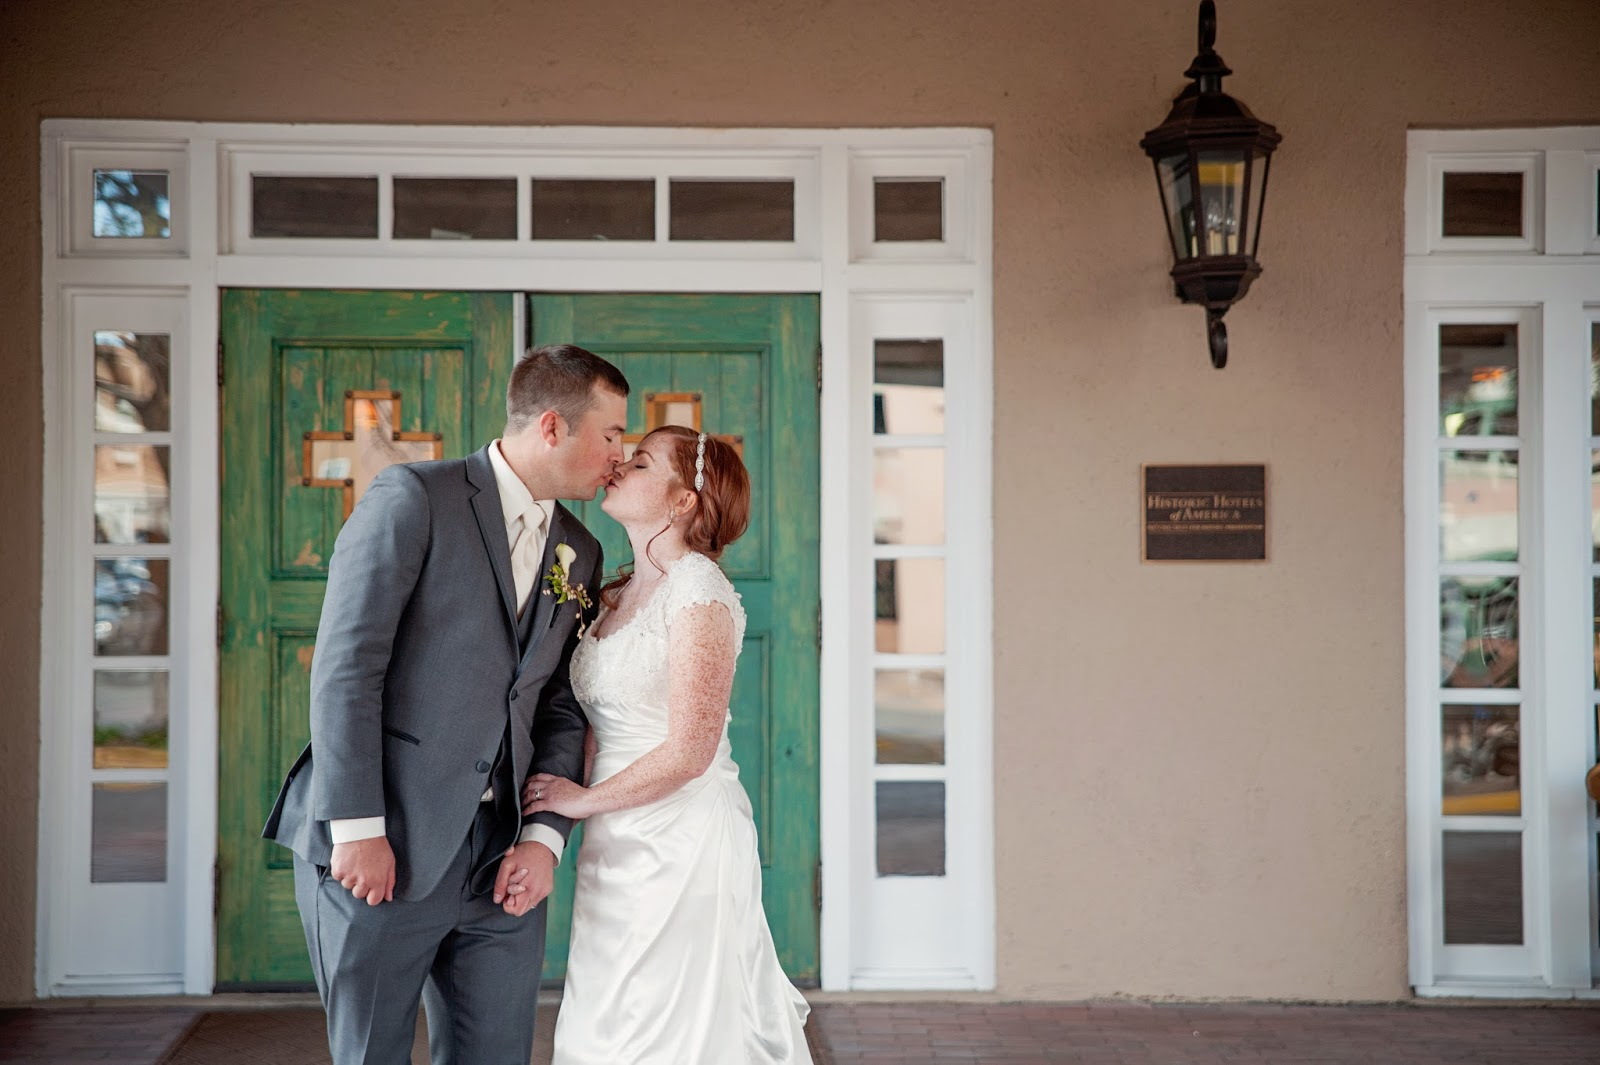 Maura Jane Photography, santa fe wedding photographers, wedding photographers in santa fe, weddings in santa fe, weddings at St. Francis Cathedral, The St Francis Cathedral, The Hilton Santa fe, Santa Fe hilton, new mexico wedding, wedding photographers in albuquerque